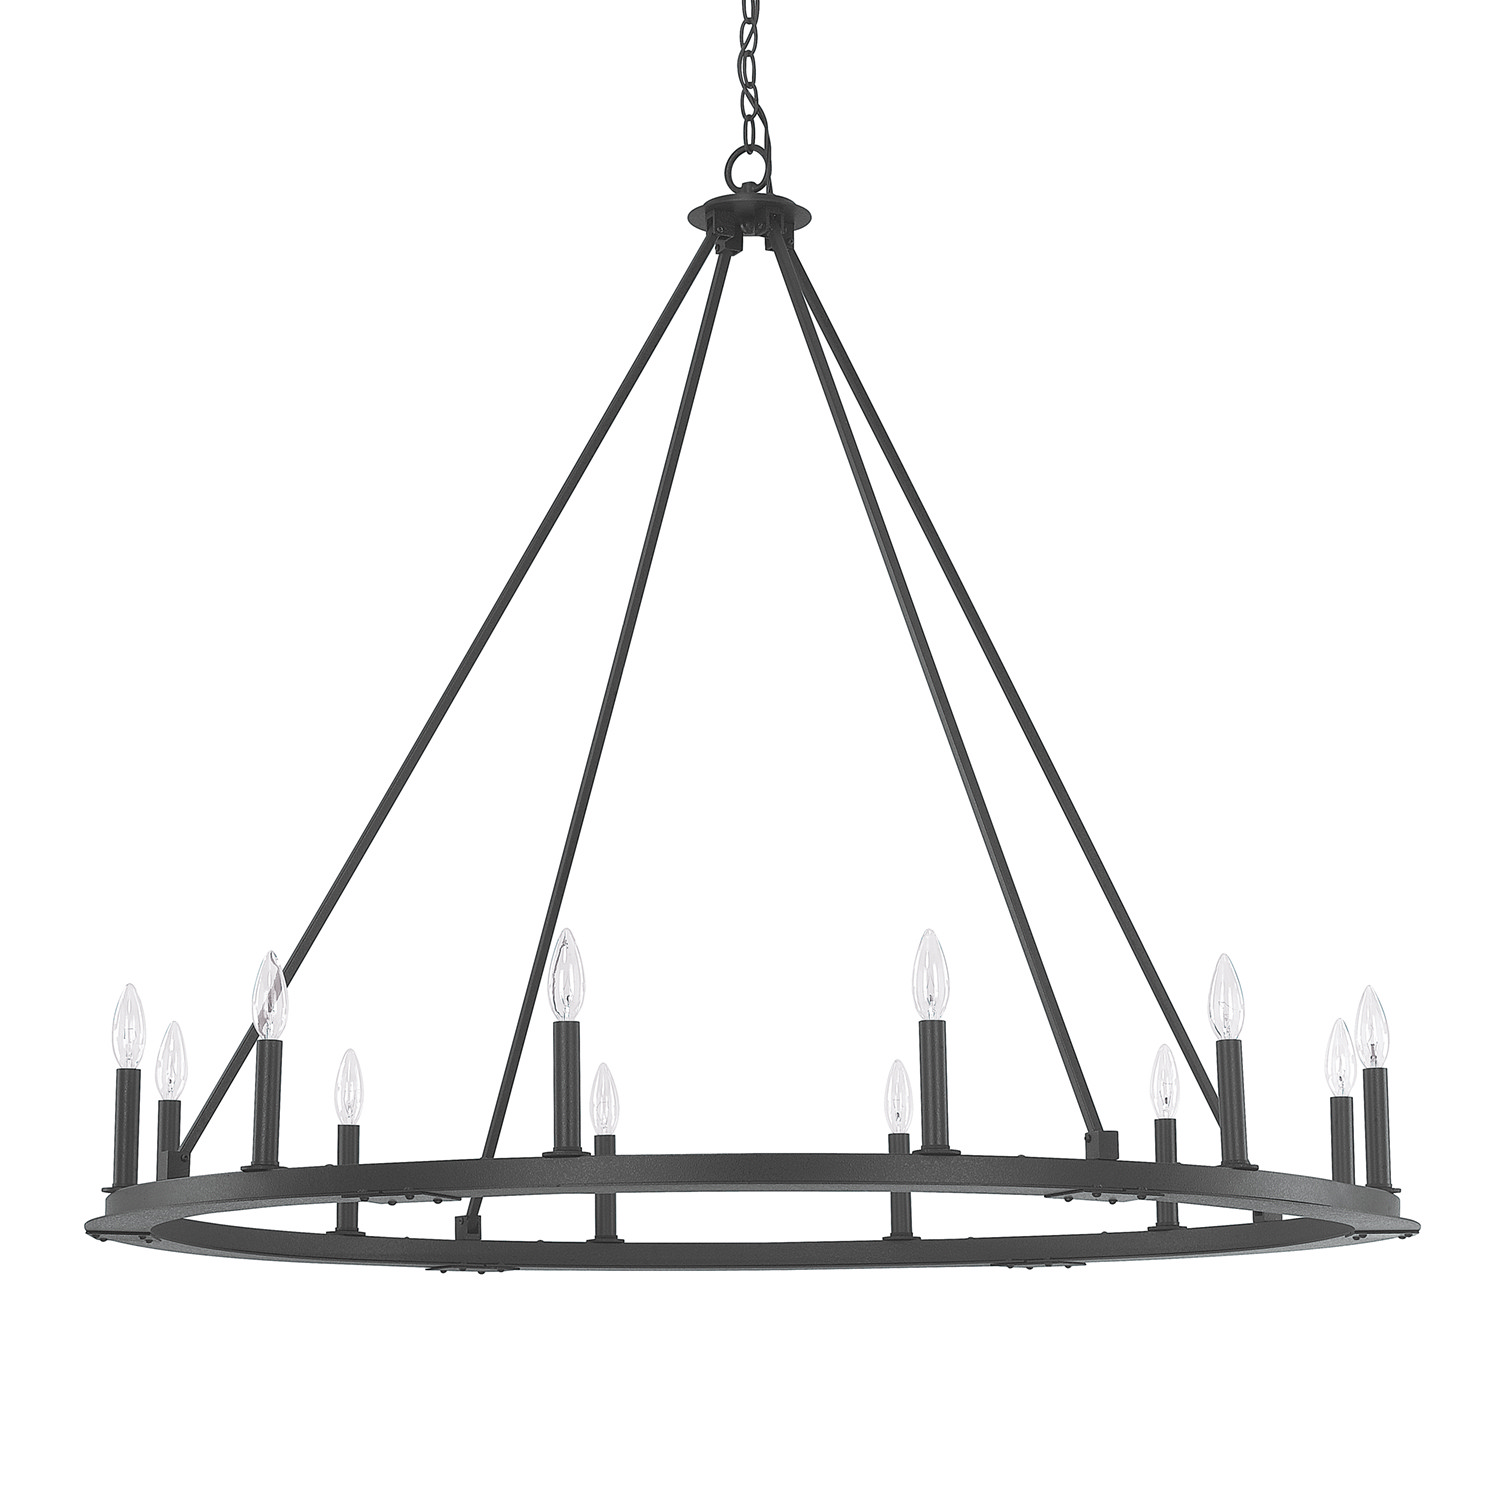 12 Light Chandelier from the Pearson collection by Capital Lighting 4912BI 000